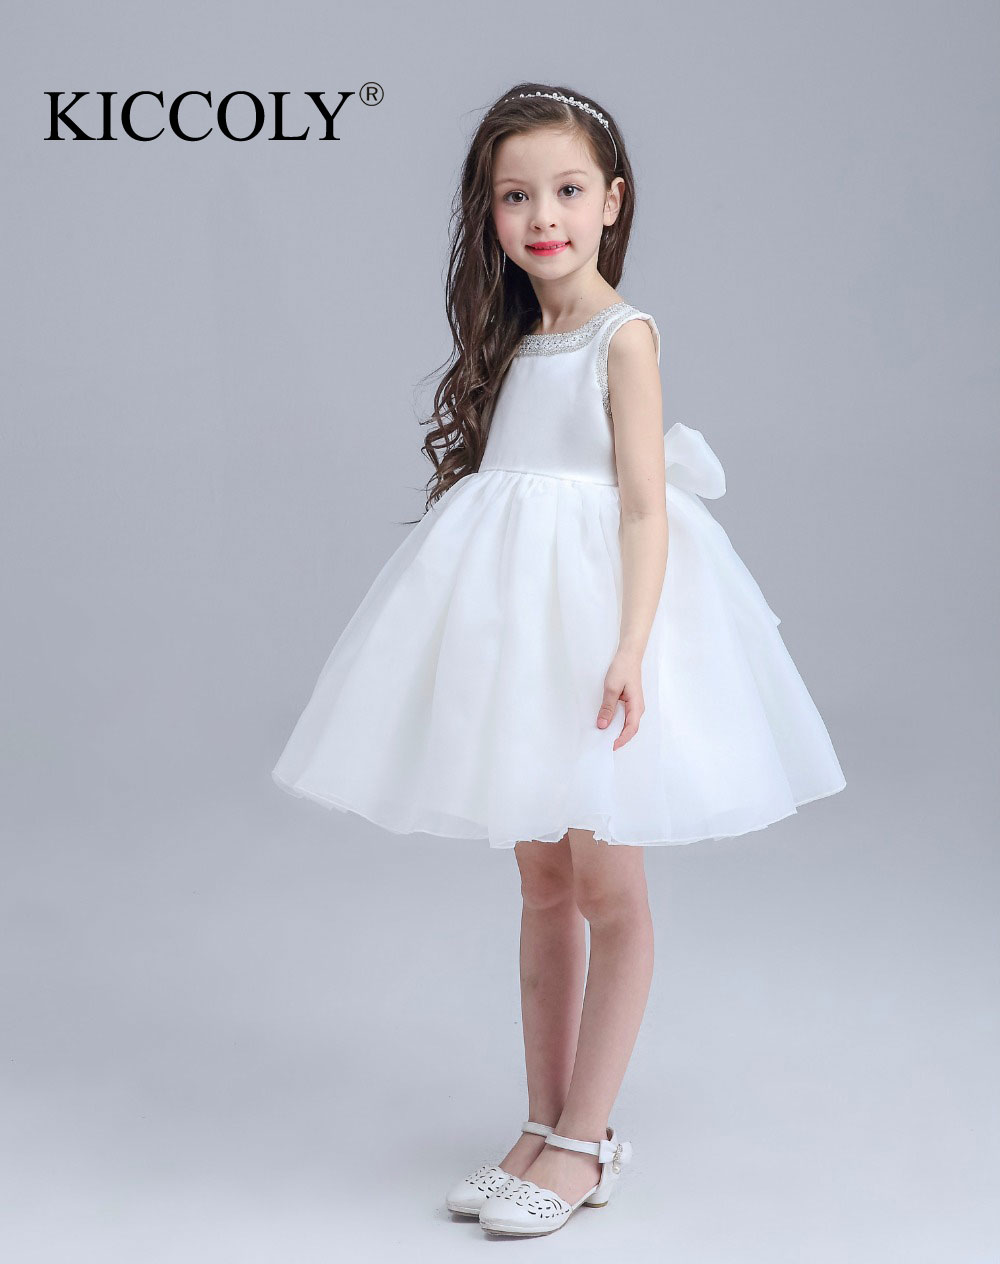 Toddler Glitz Pageant Dresses For Wedding 2016 First Communion Dresses Pageant Ball Gowns for Flower Girls vestidos de comunion 2016 one shoulder ball gowns first communion dress flower girl dresses junior kid glitz pageant dress for wedding and party